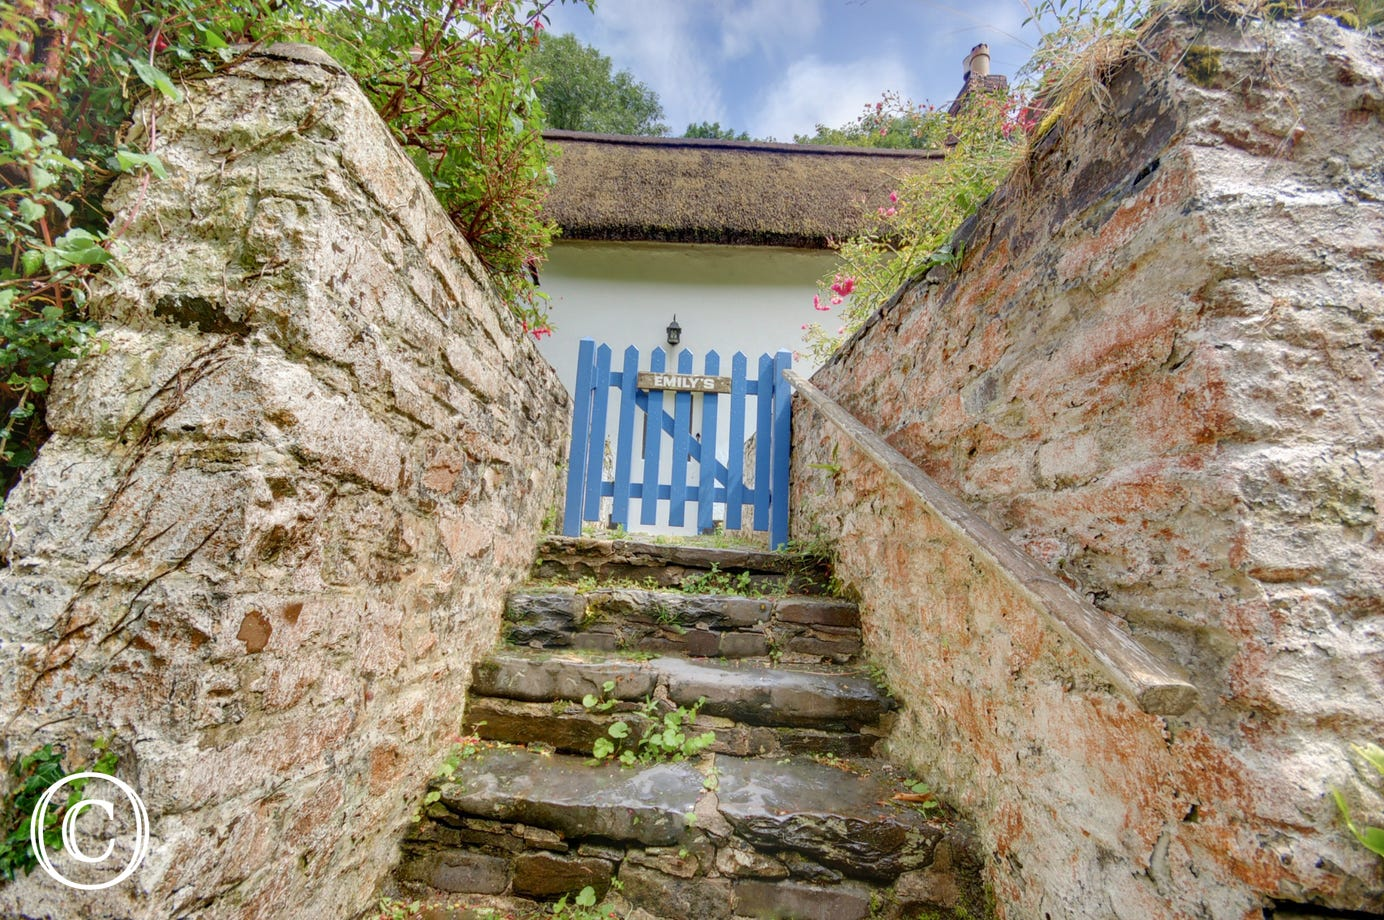 Steps up to the front of the cottage